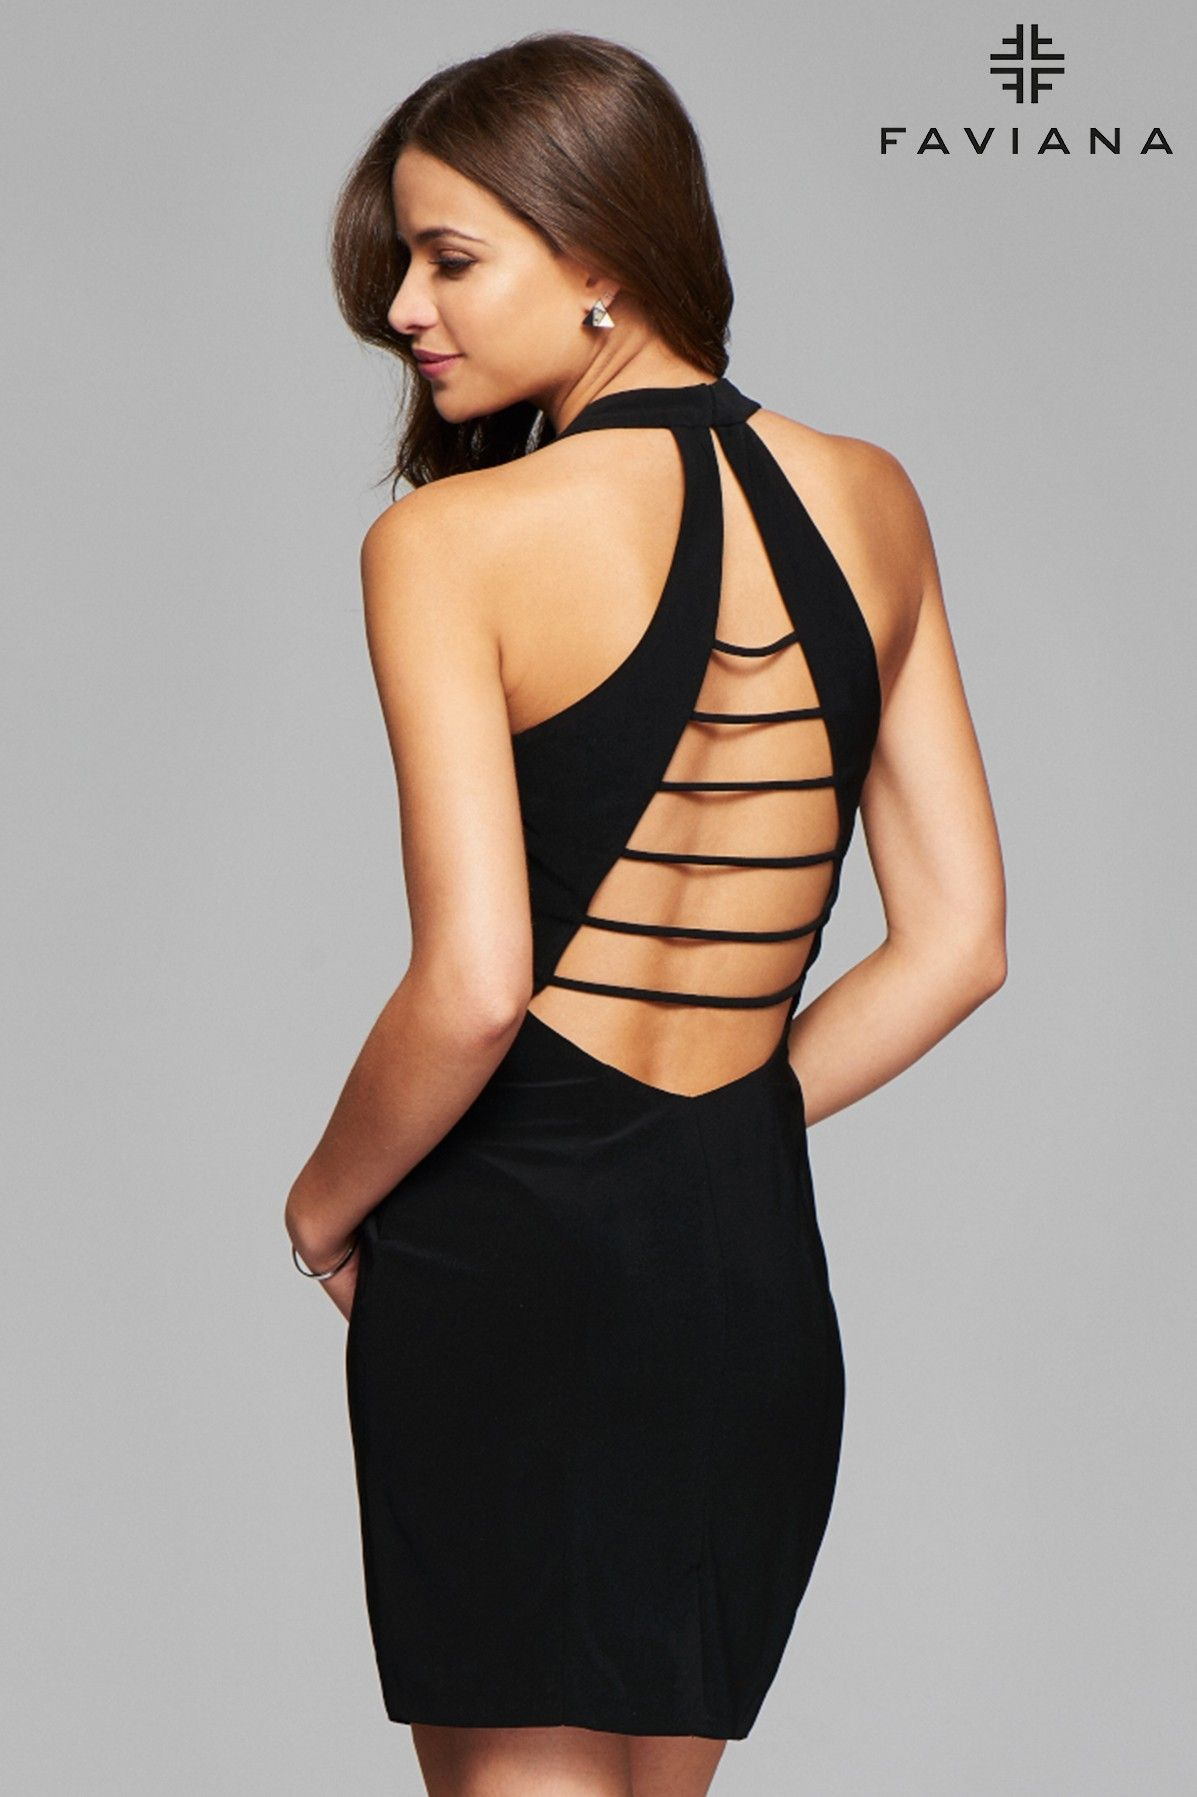 Strappy cocktail dresses